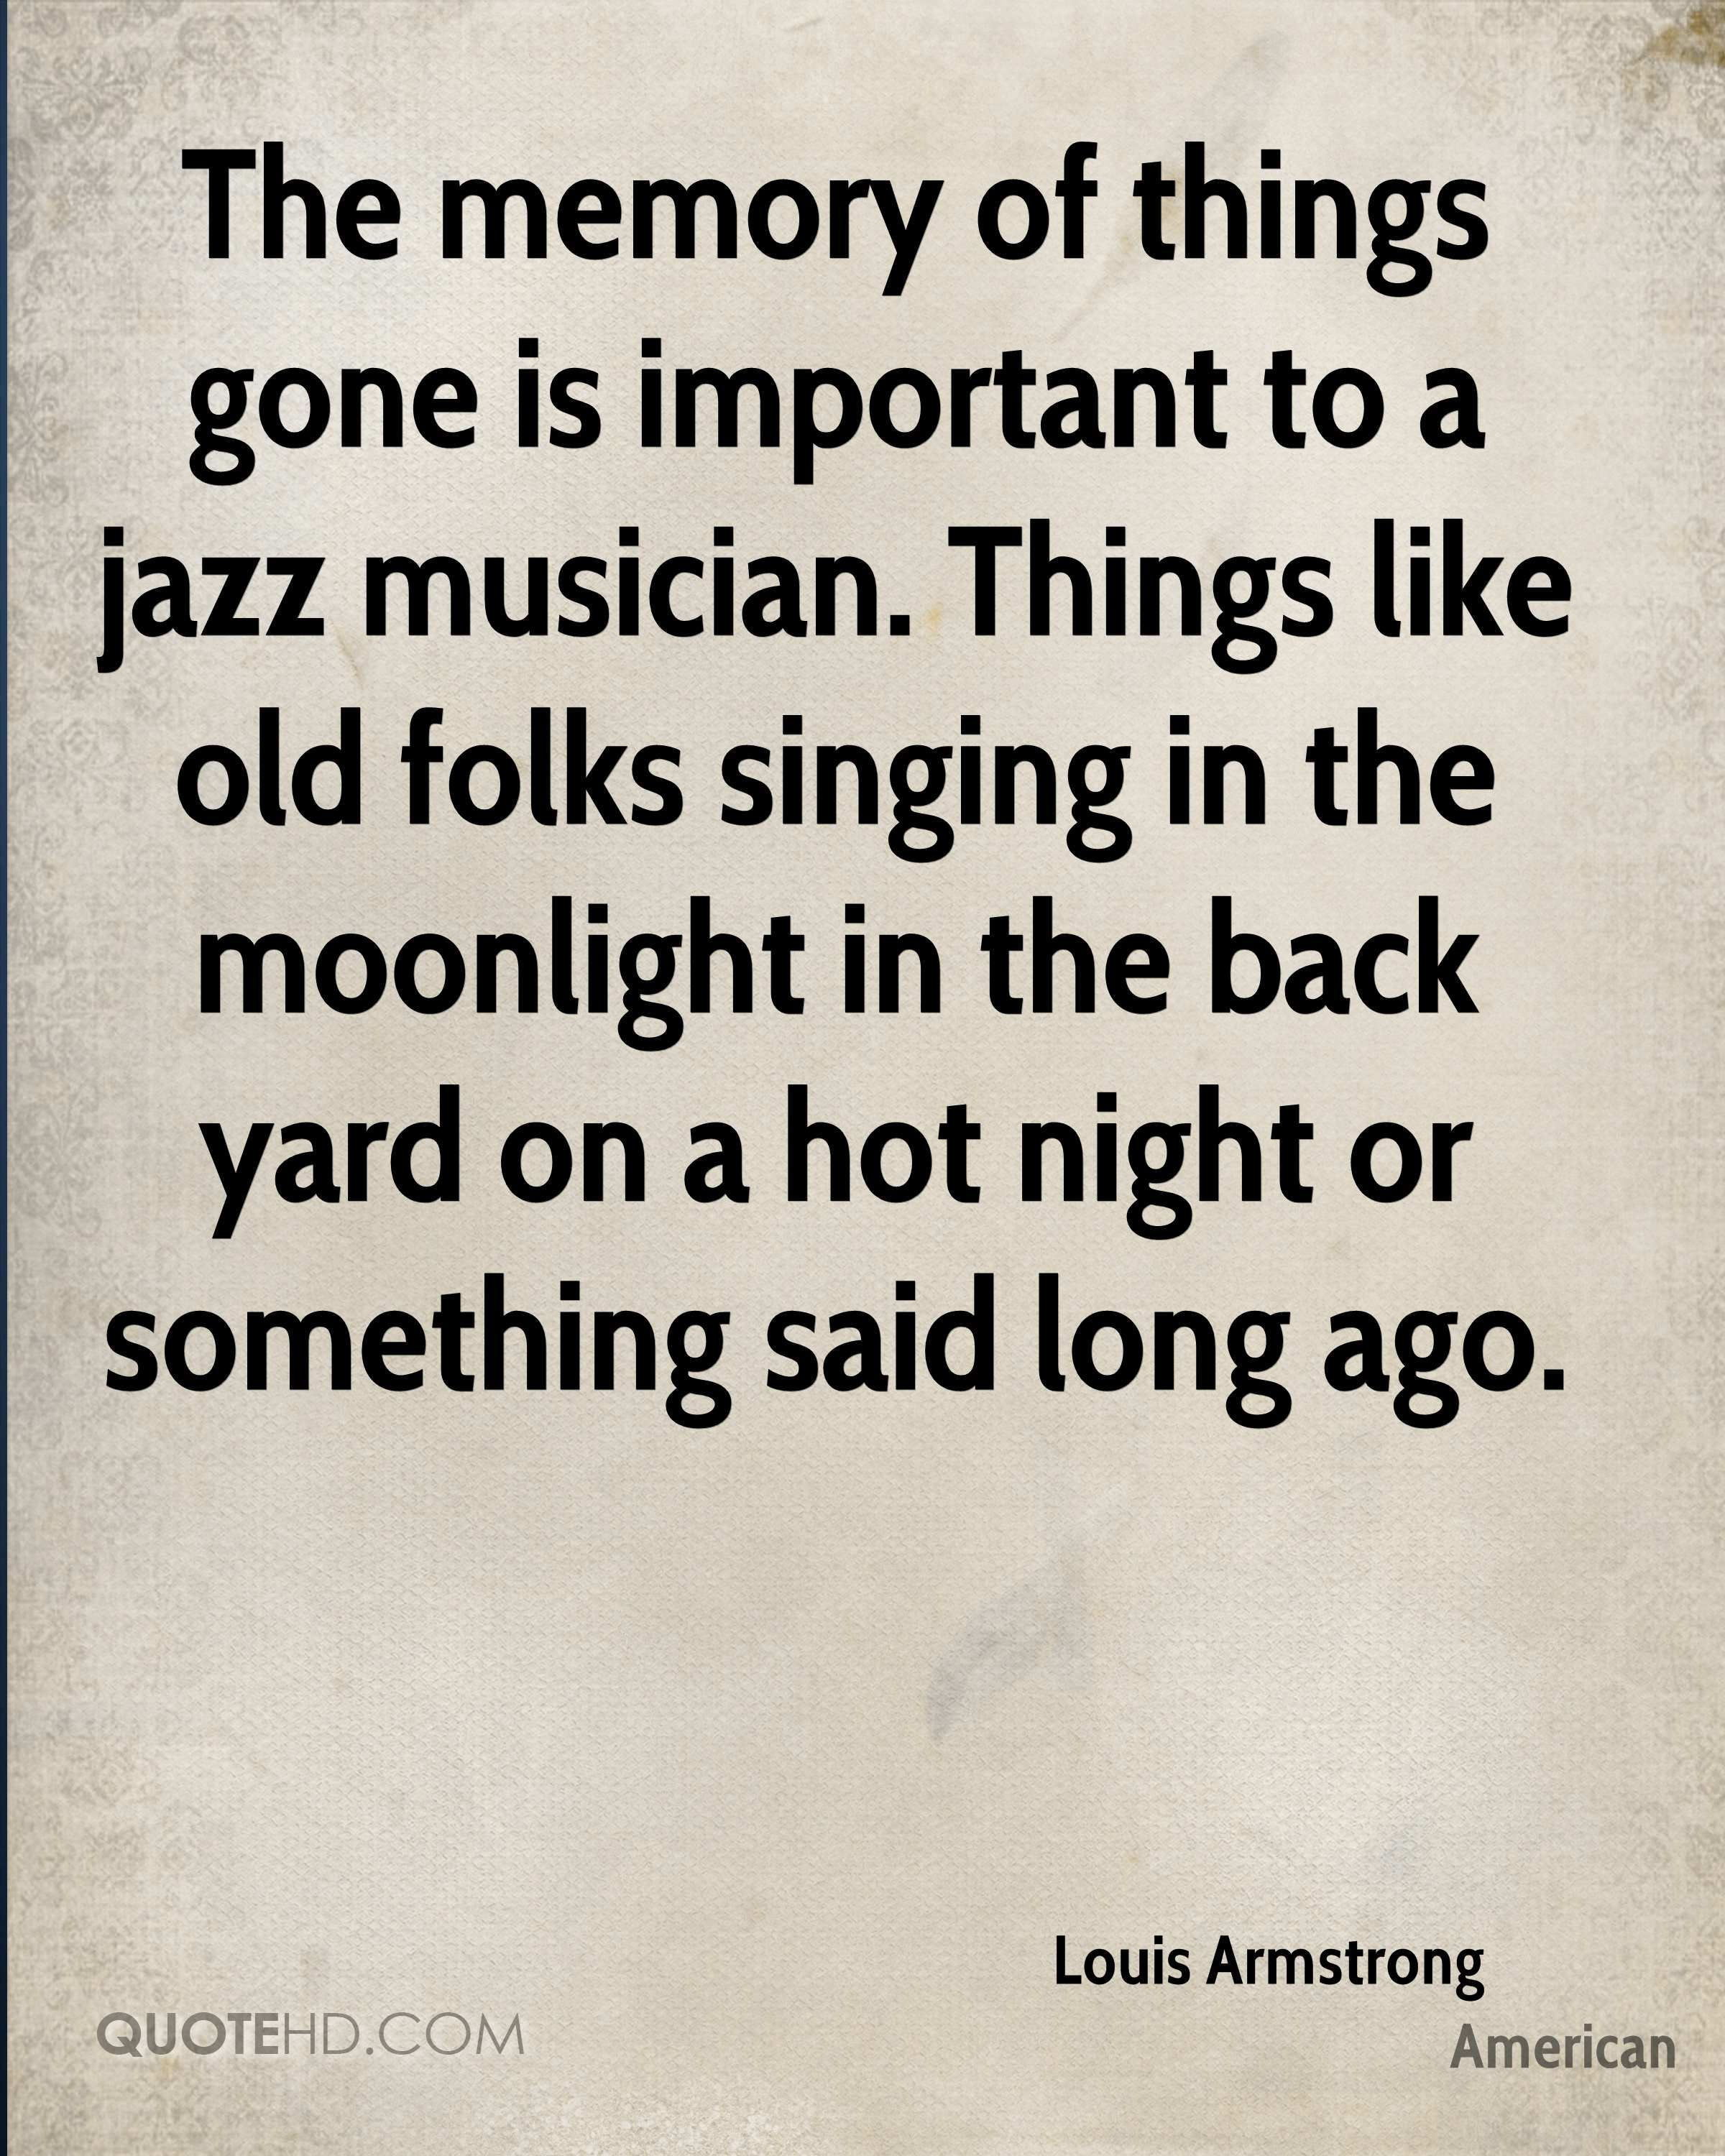 louis armstrong quotes quotehd quotes from noters  louis armstrong quotes quotehd